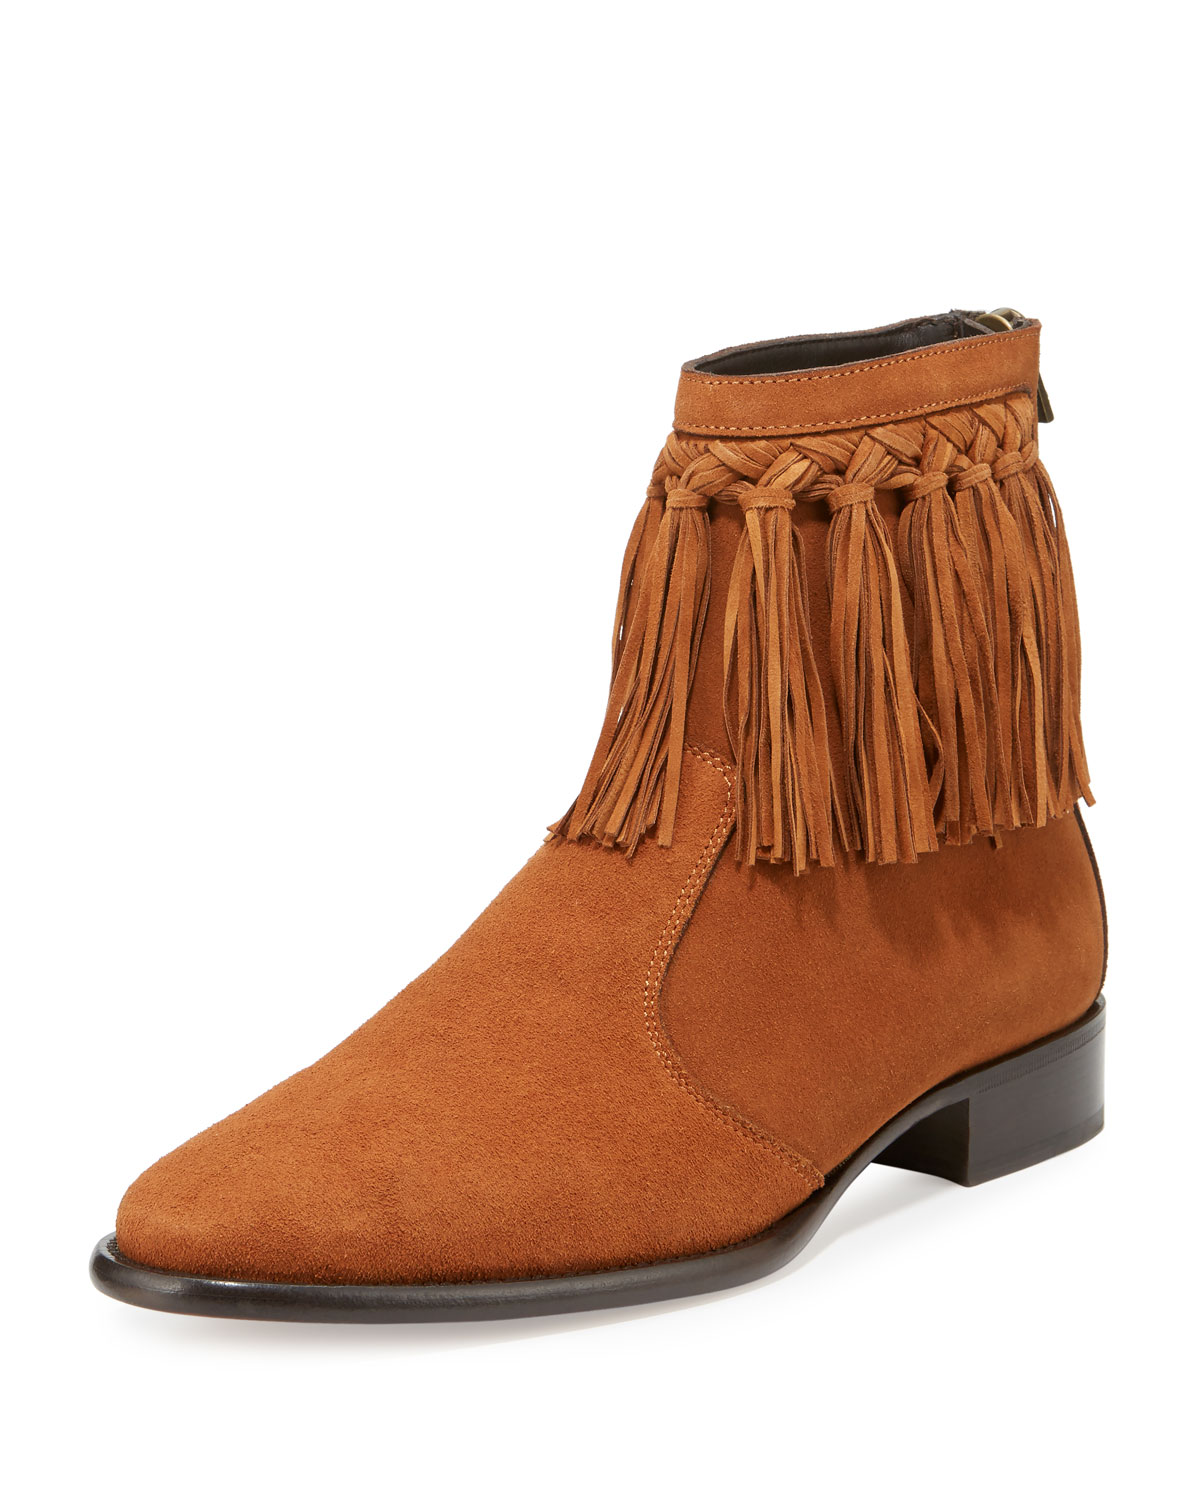 46ba986bd7e Jimmy Choo Eric Men s Dry Suede Fringe-Trim Ankle Boot